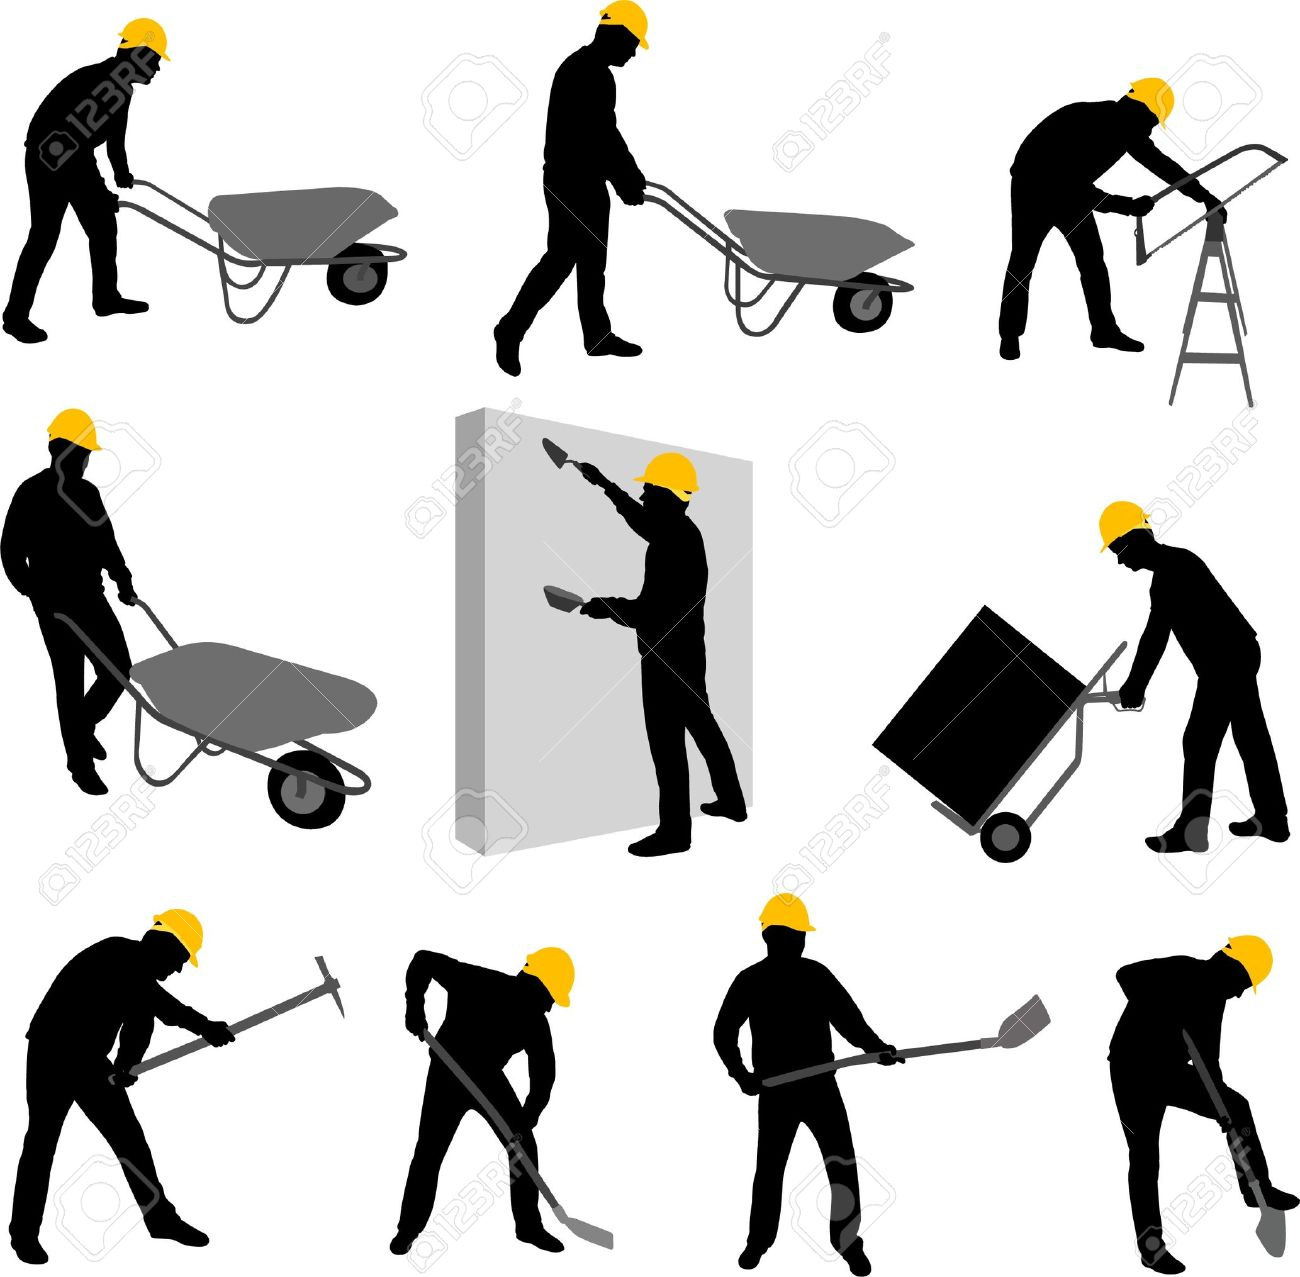 construction workers silhouettes 2 - vector - 11663881